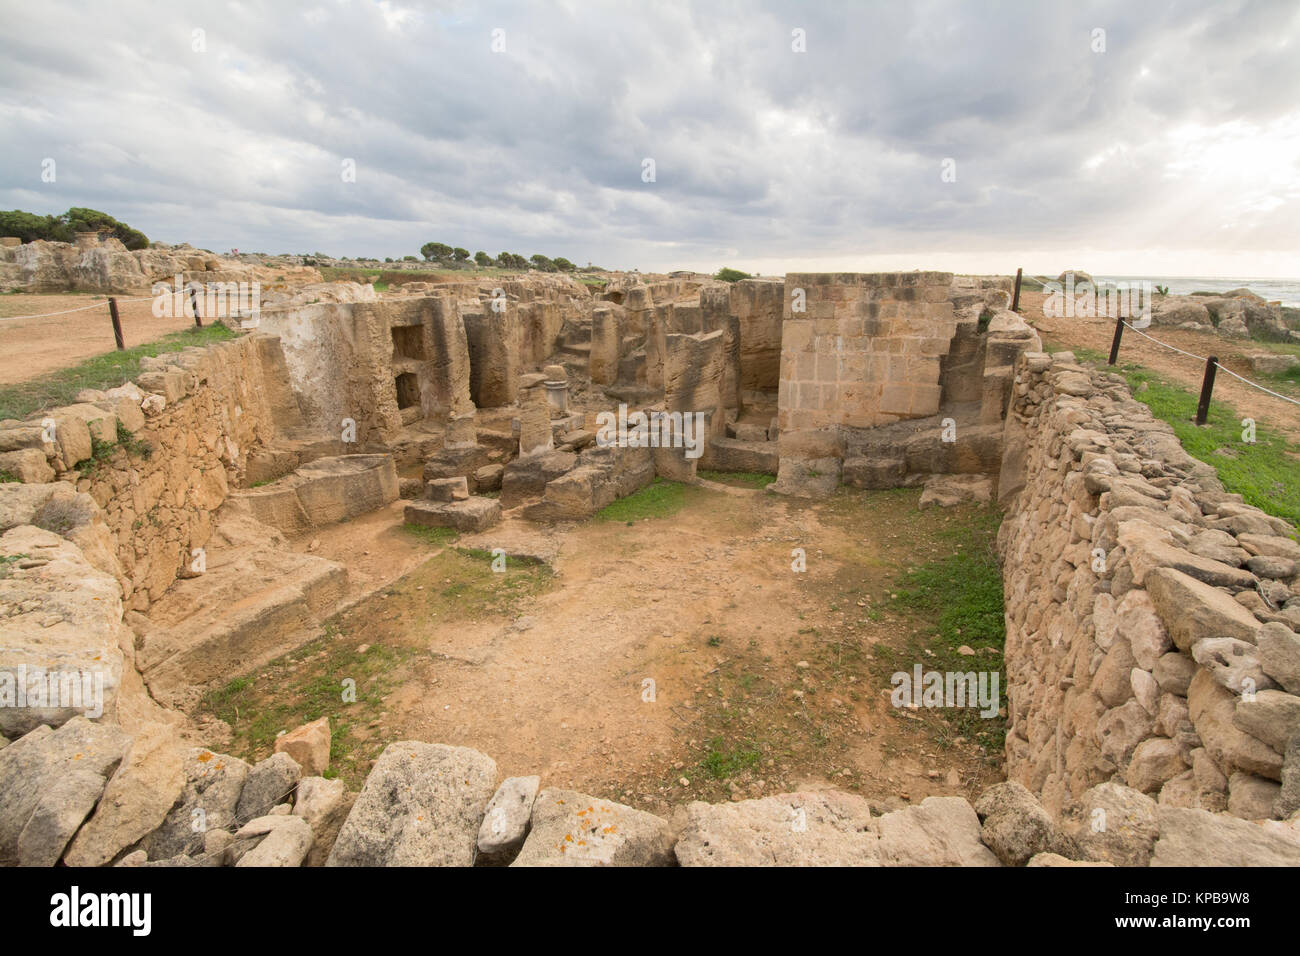 The Tombs of the Kings, part of the archeological site in Paphos, Cyprus - Stock Image